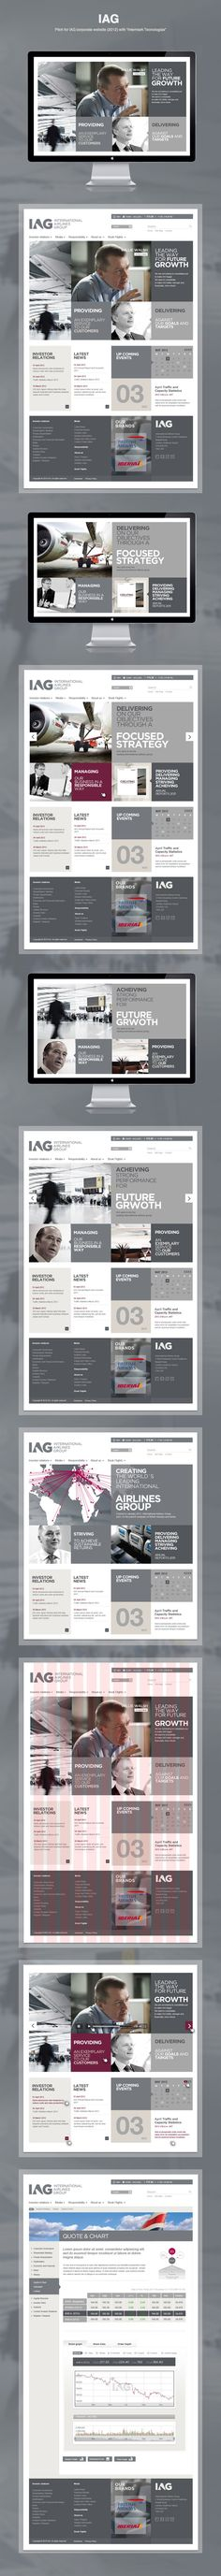 "IAG by Yan Duffield, via Behance *** ""Pitch for IAG corporate website with ""Intermark Tecnologias"""" - Love a good success story? Learn how I went from zero to 1 million in sales in 5 months with an e-commerce store. Page Design, Ui Design, Layout Design, Flat Design, Corporate Website Design, Corporate Design, Website Design Inspiration, Intranet Portal, Intranet Design"